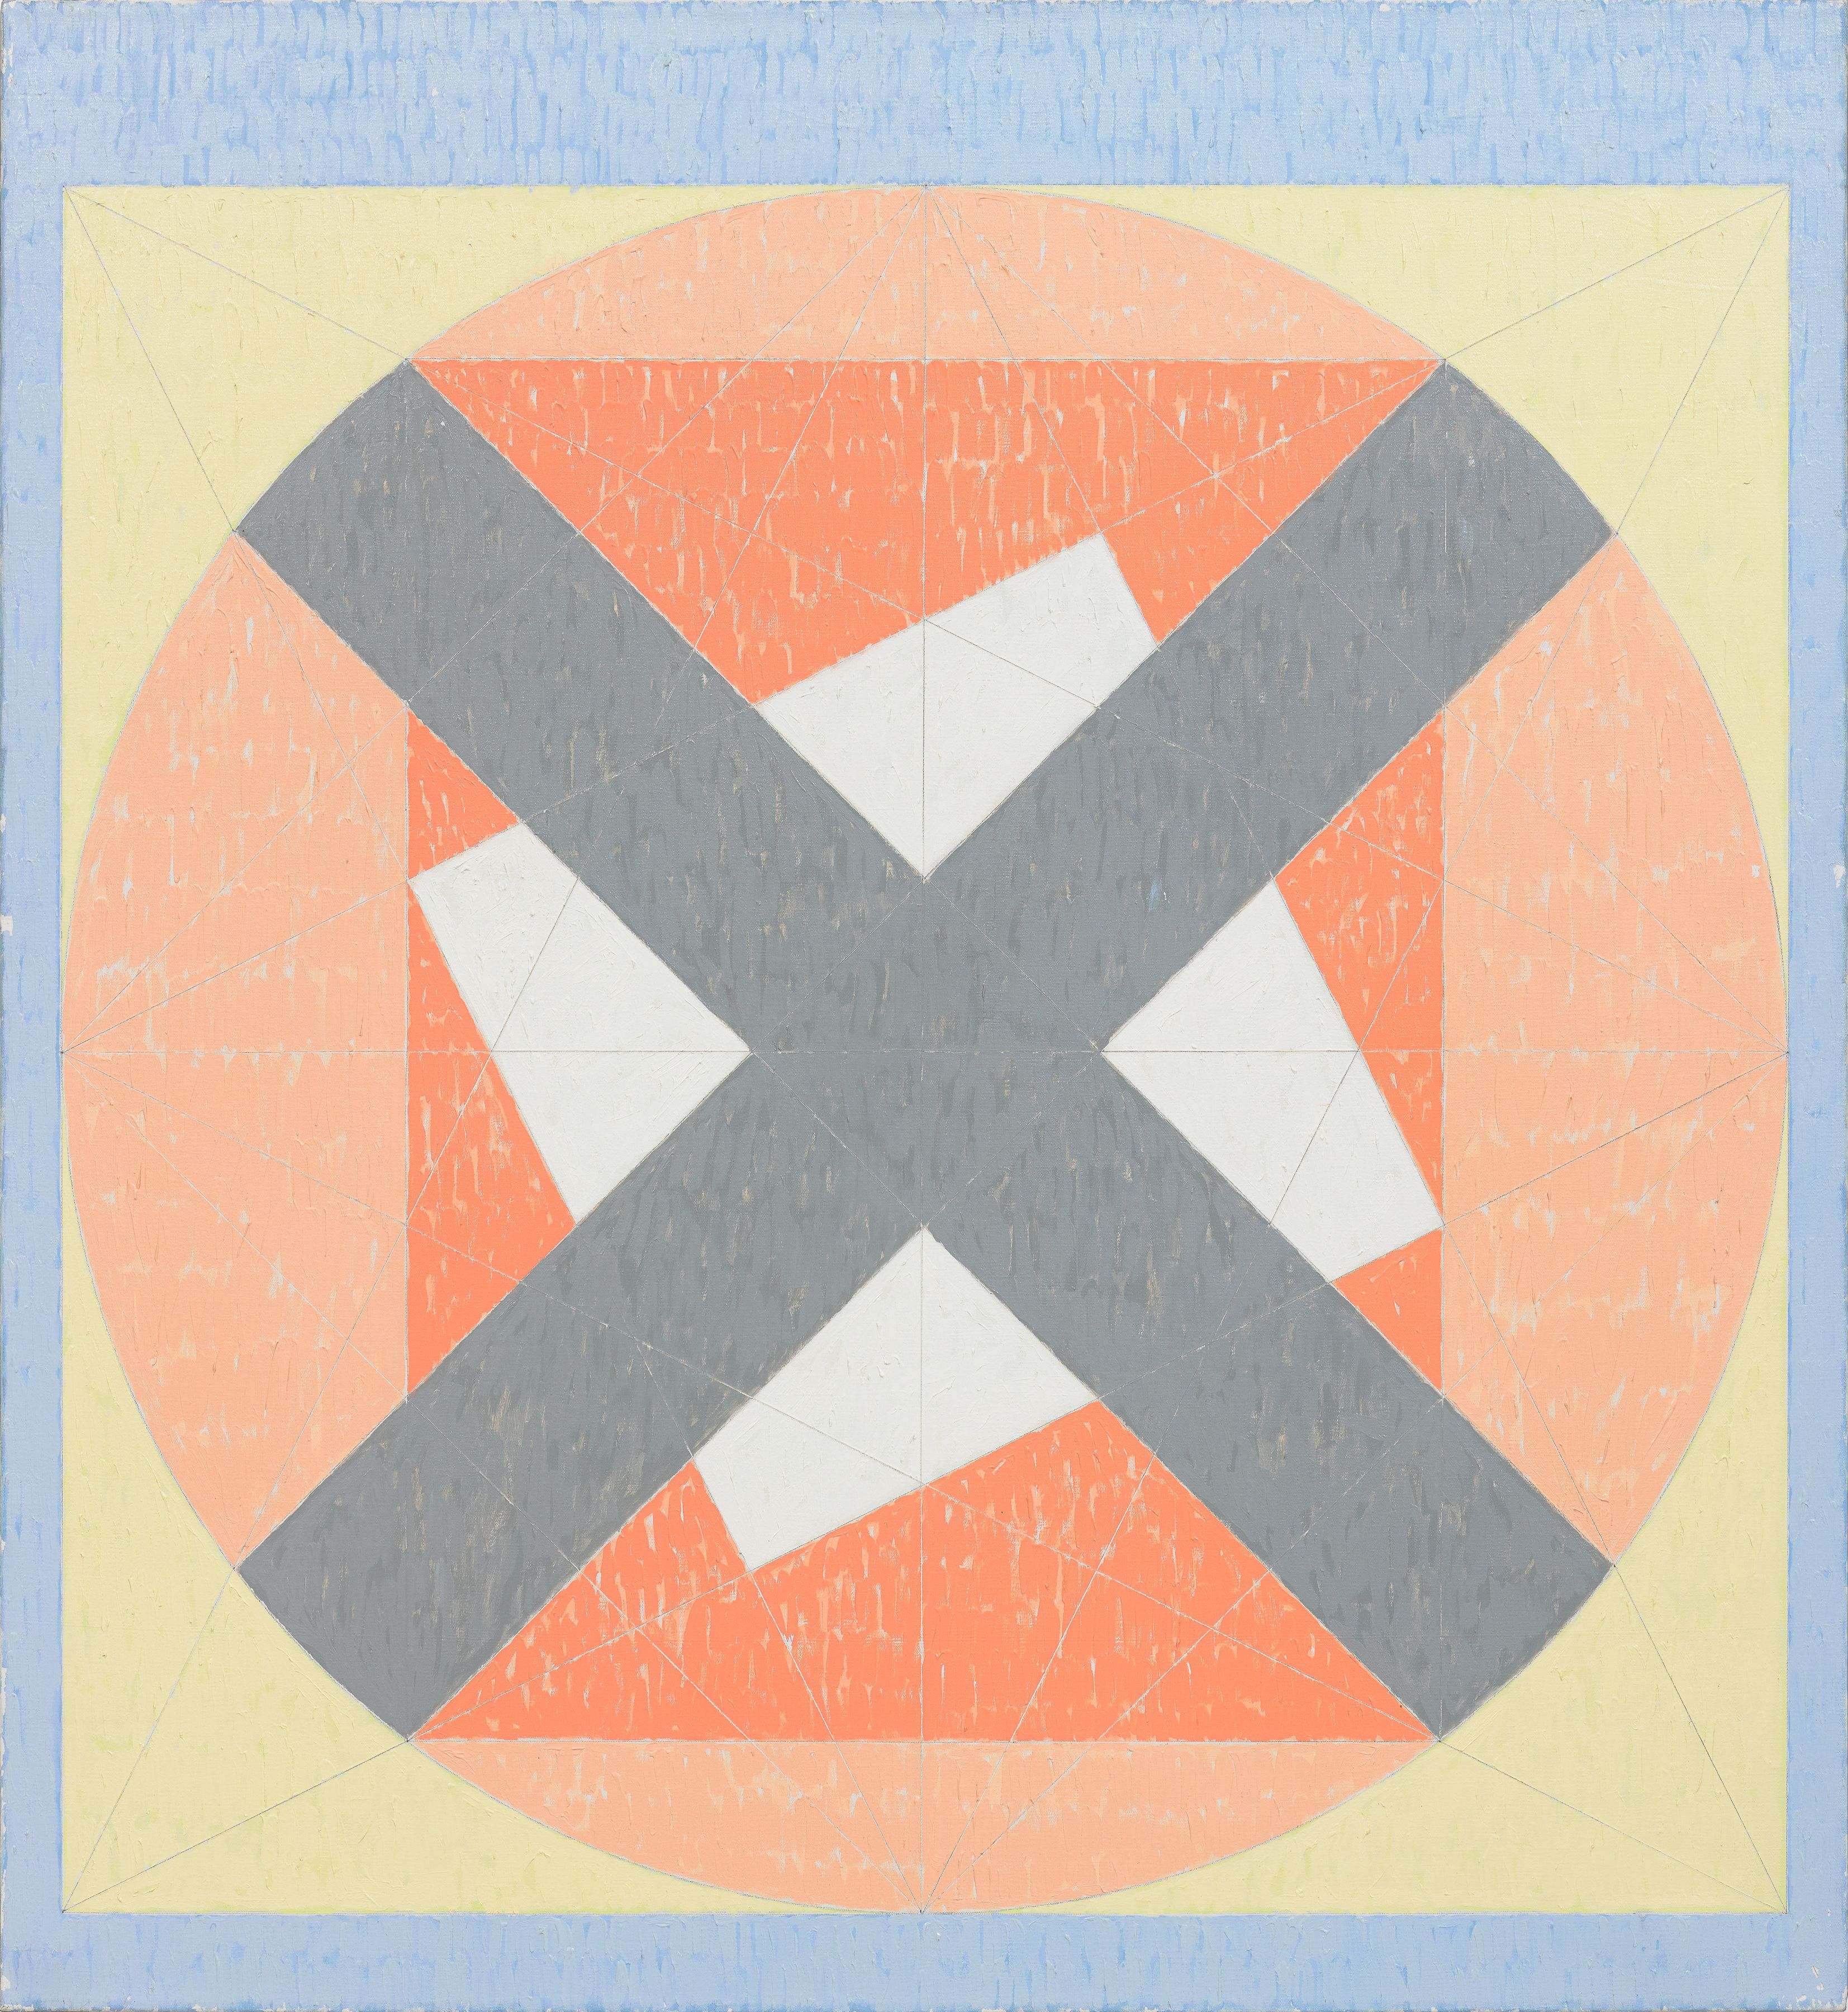 X on Circle in the Square (Q4-81 #2), 1981, Acrylic on canvas